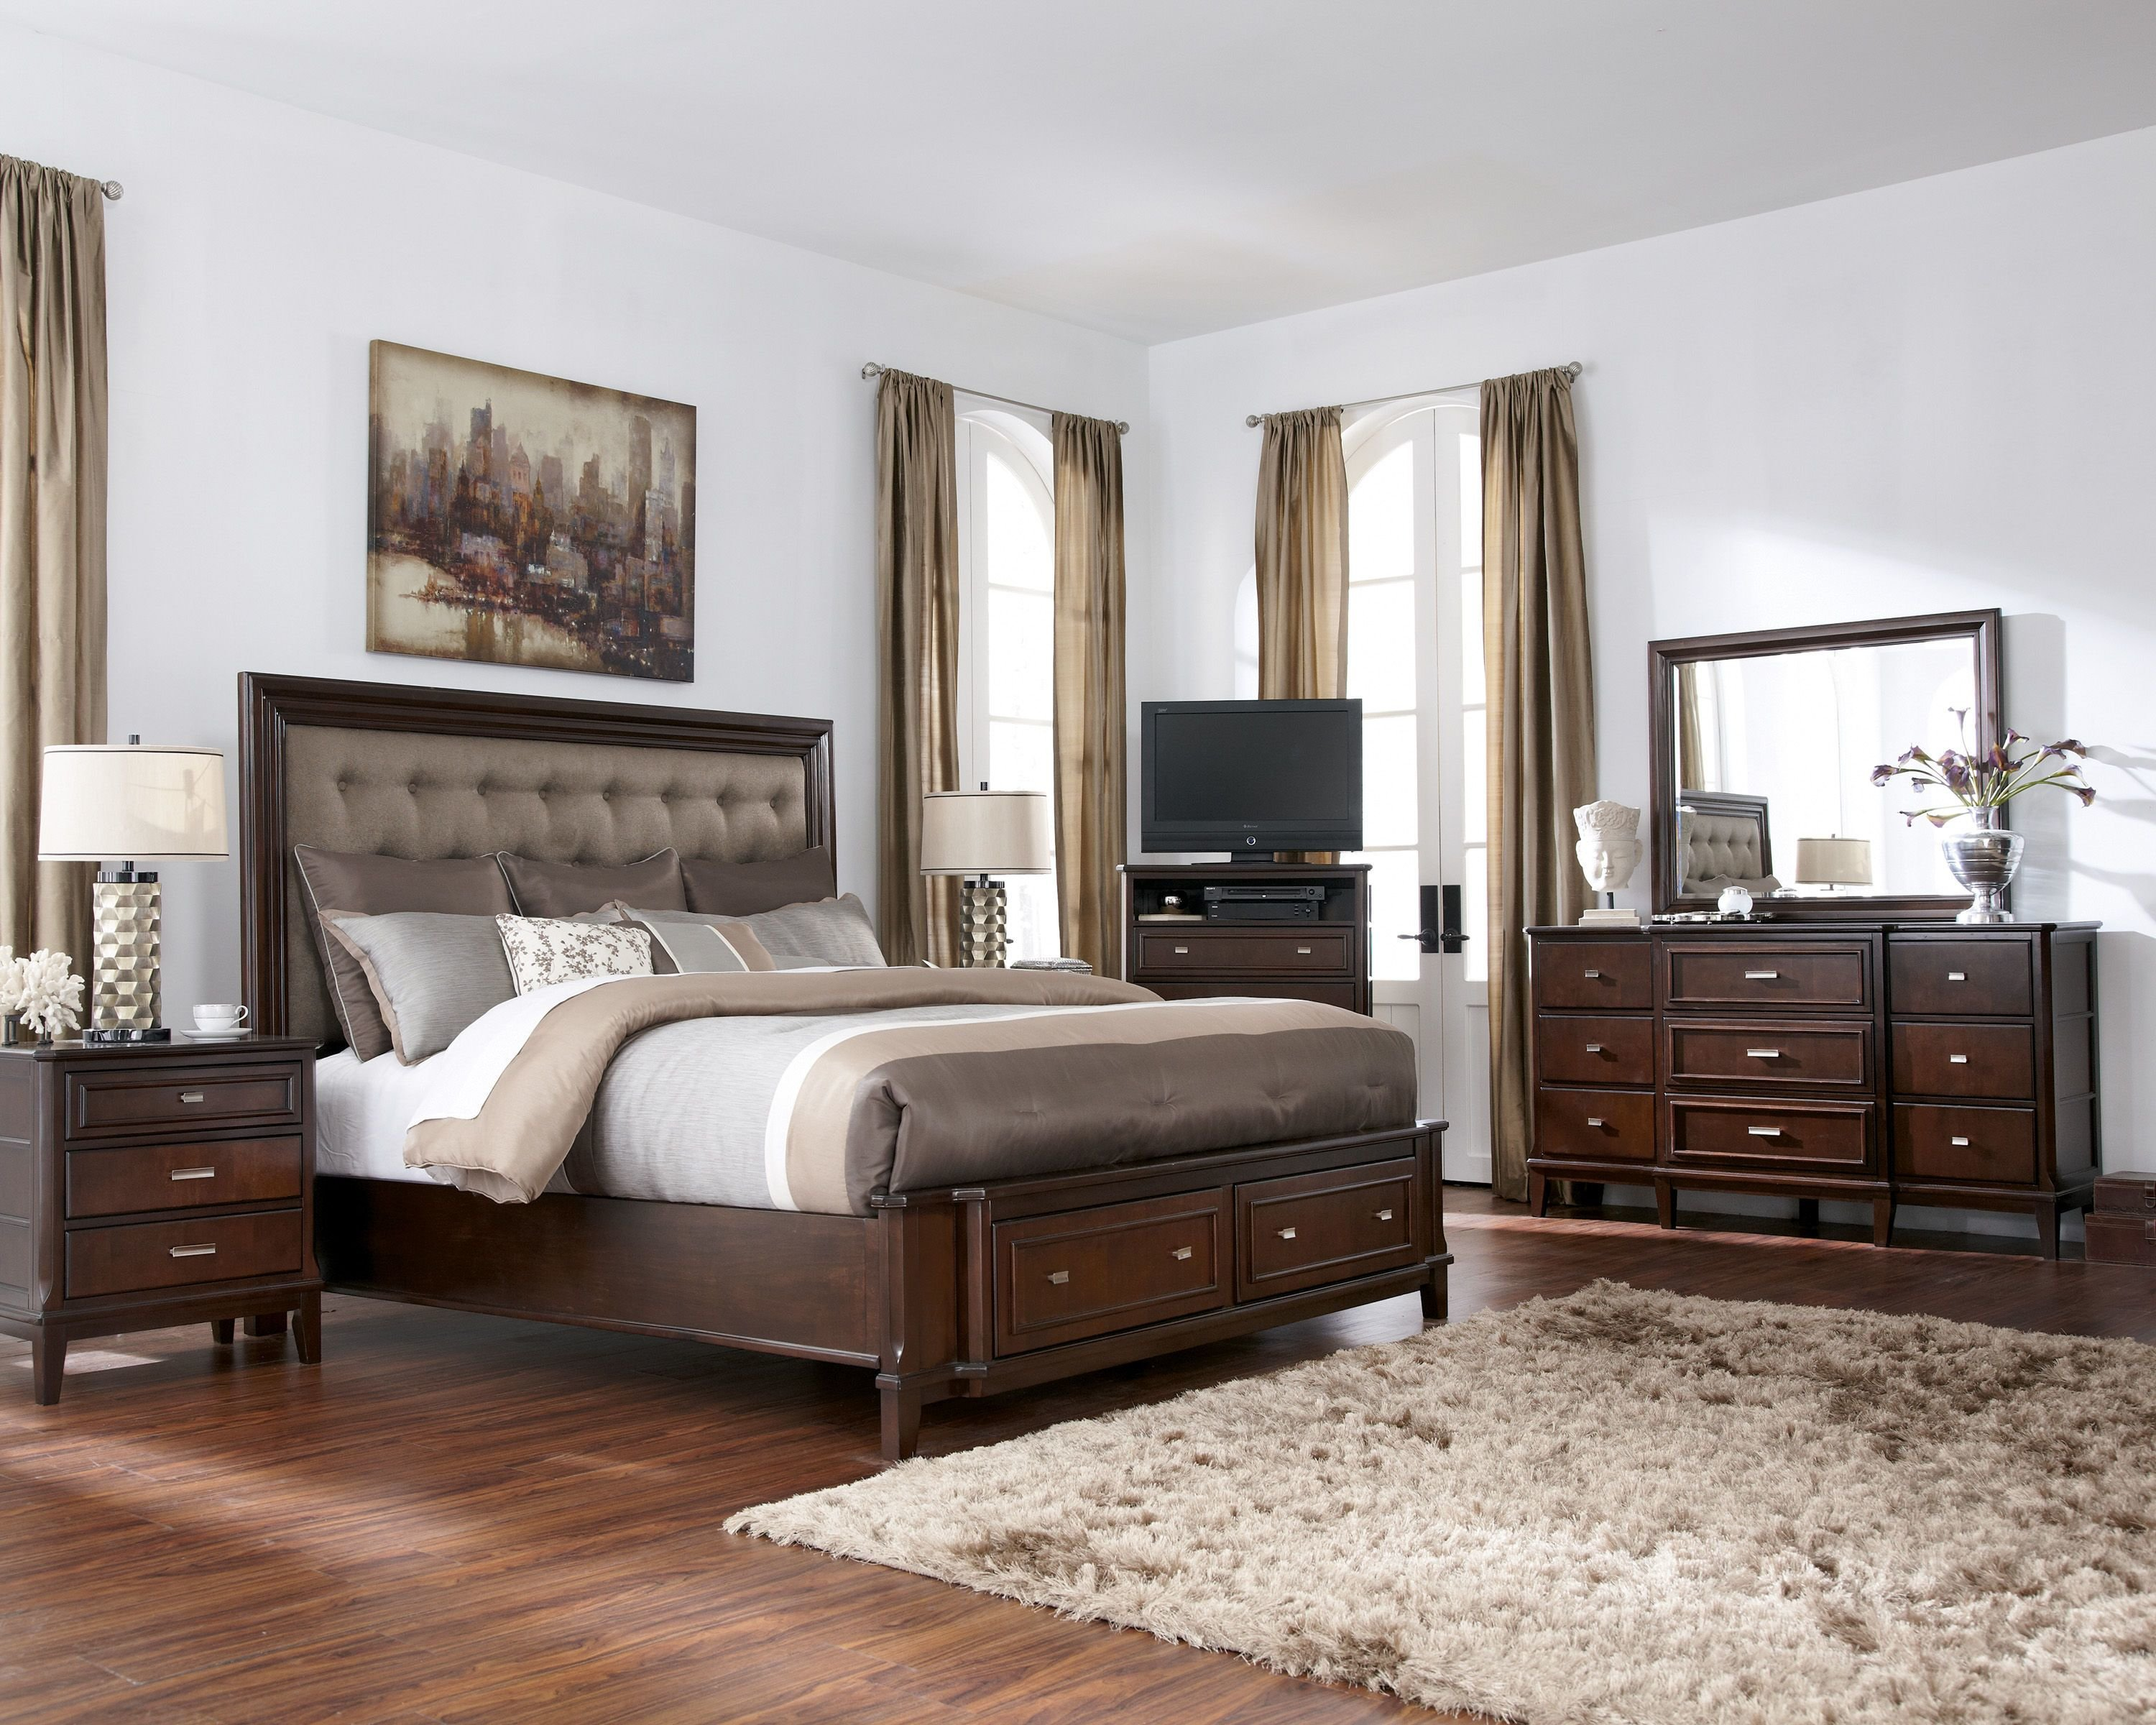 Best Larimer Contemporary Brown 5Pc Bedroom Set W Queen Storage Bed The Classy Home With Pictures